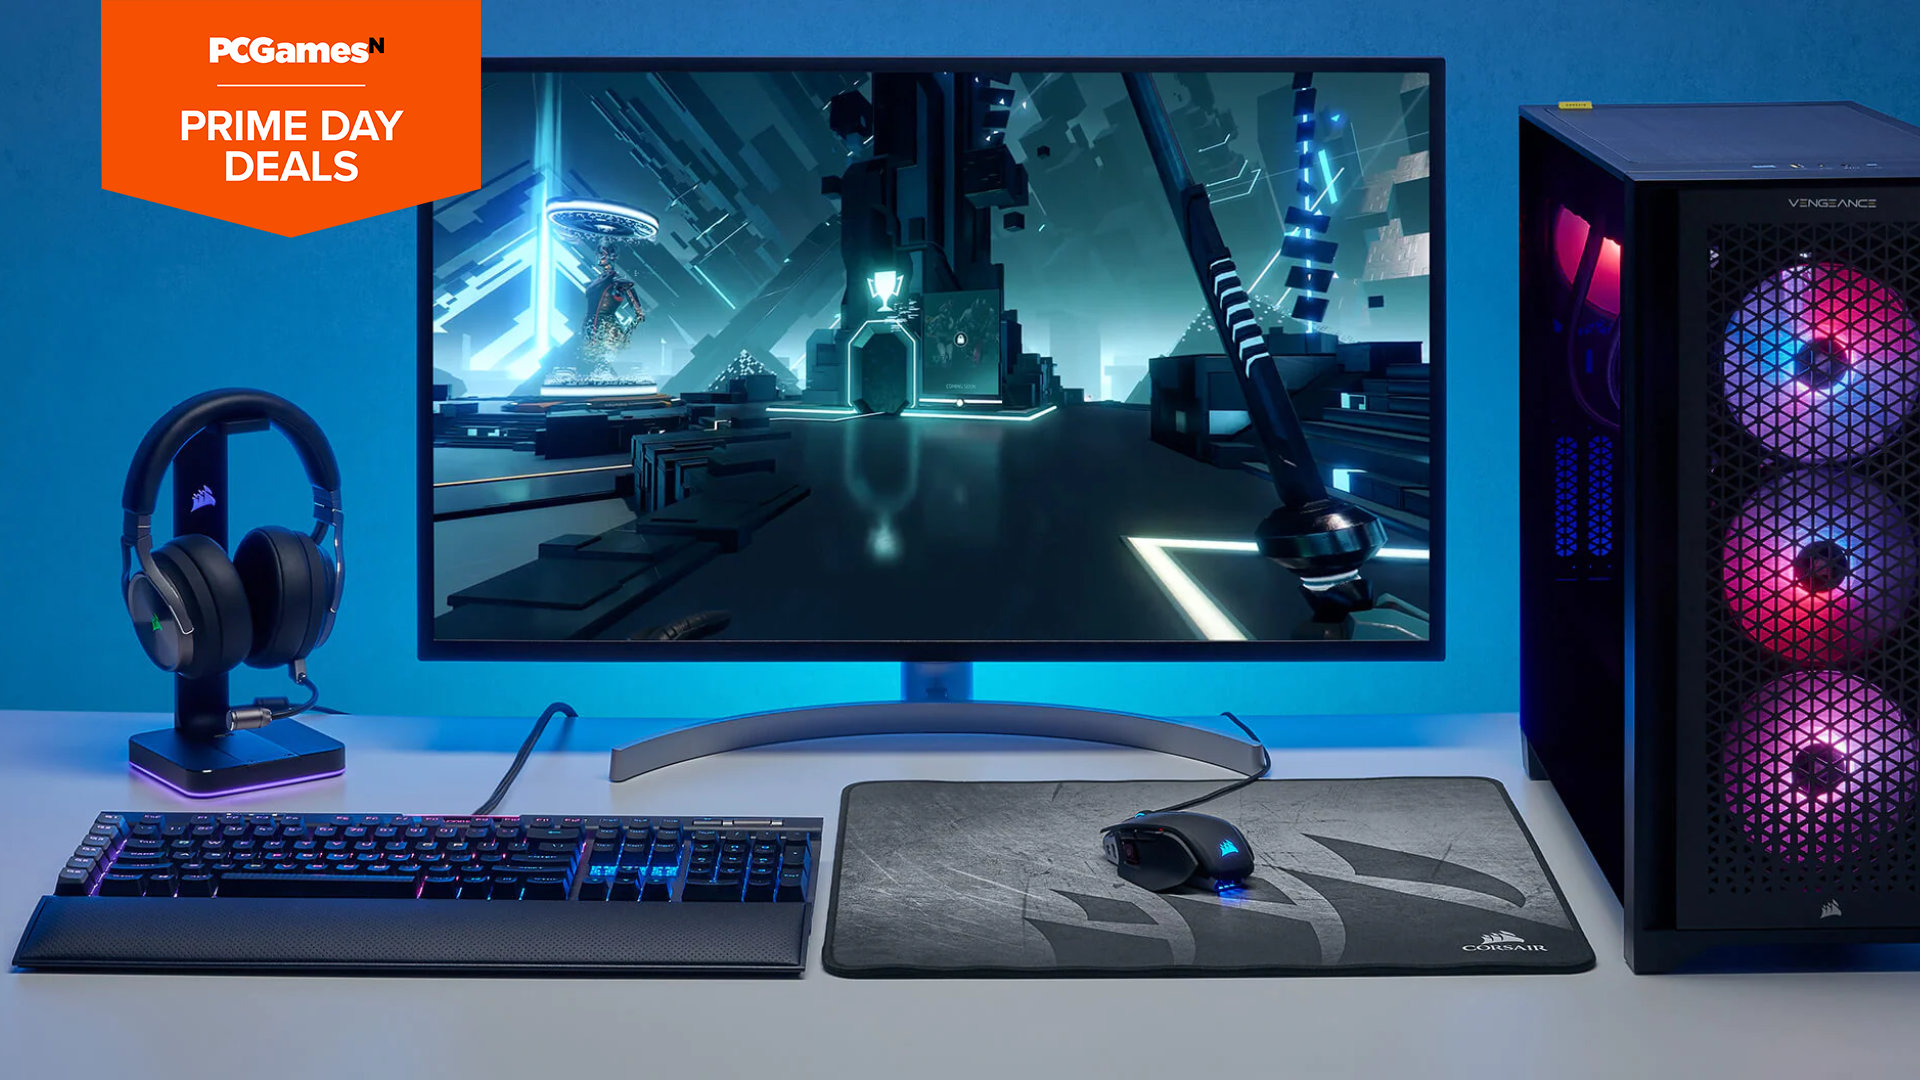 The best Amazon Prime Day deals on gaming hardware